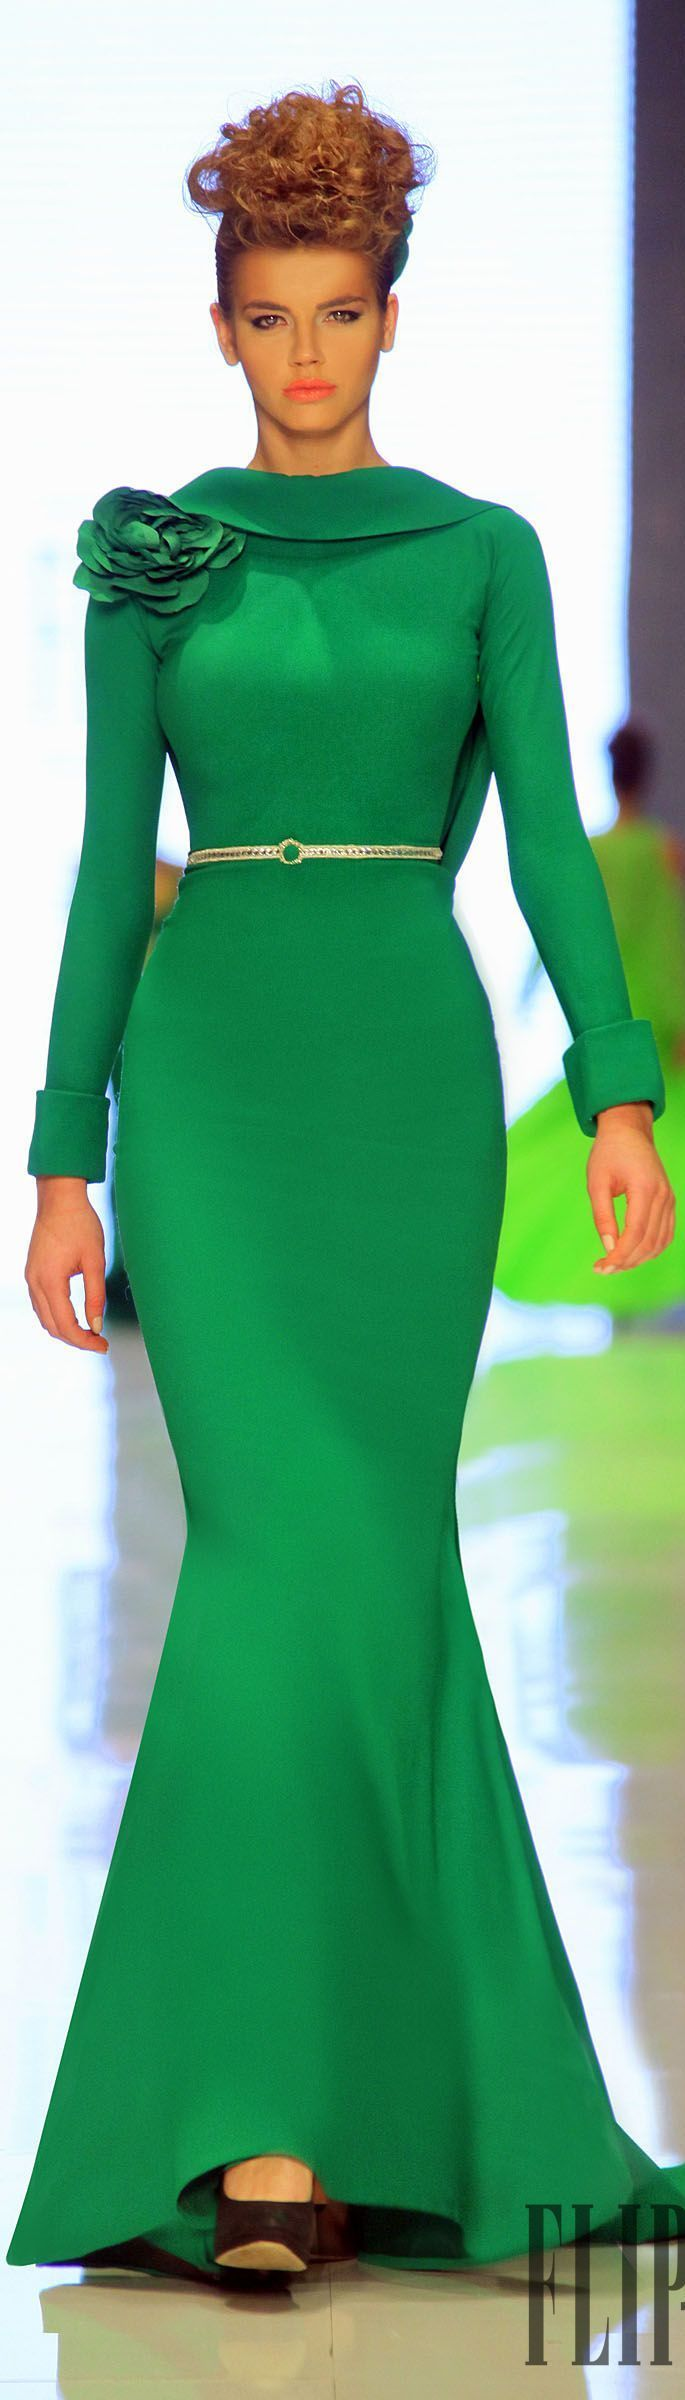 evening gown with sleeves Fouad Sarkis - George L. Rosario is a Realtor with Coldwell Banker, published author, public speaker, sales trainer and Consultant with Rosario Realty PP Inc. http://www.GeorgeRosario.com